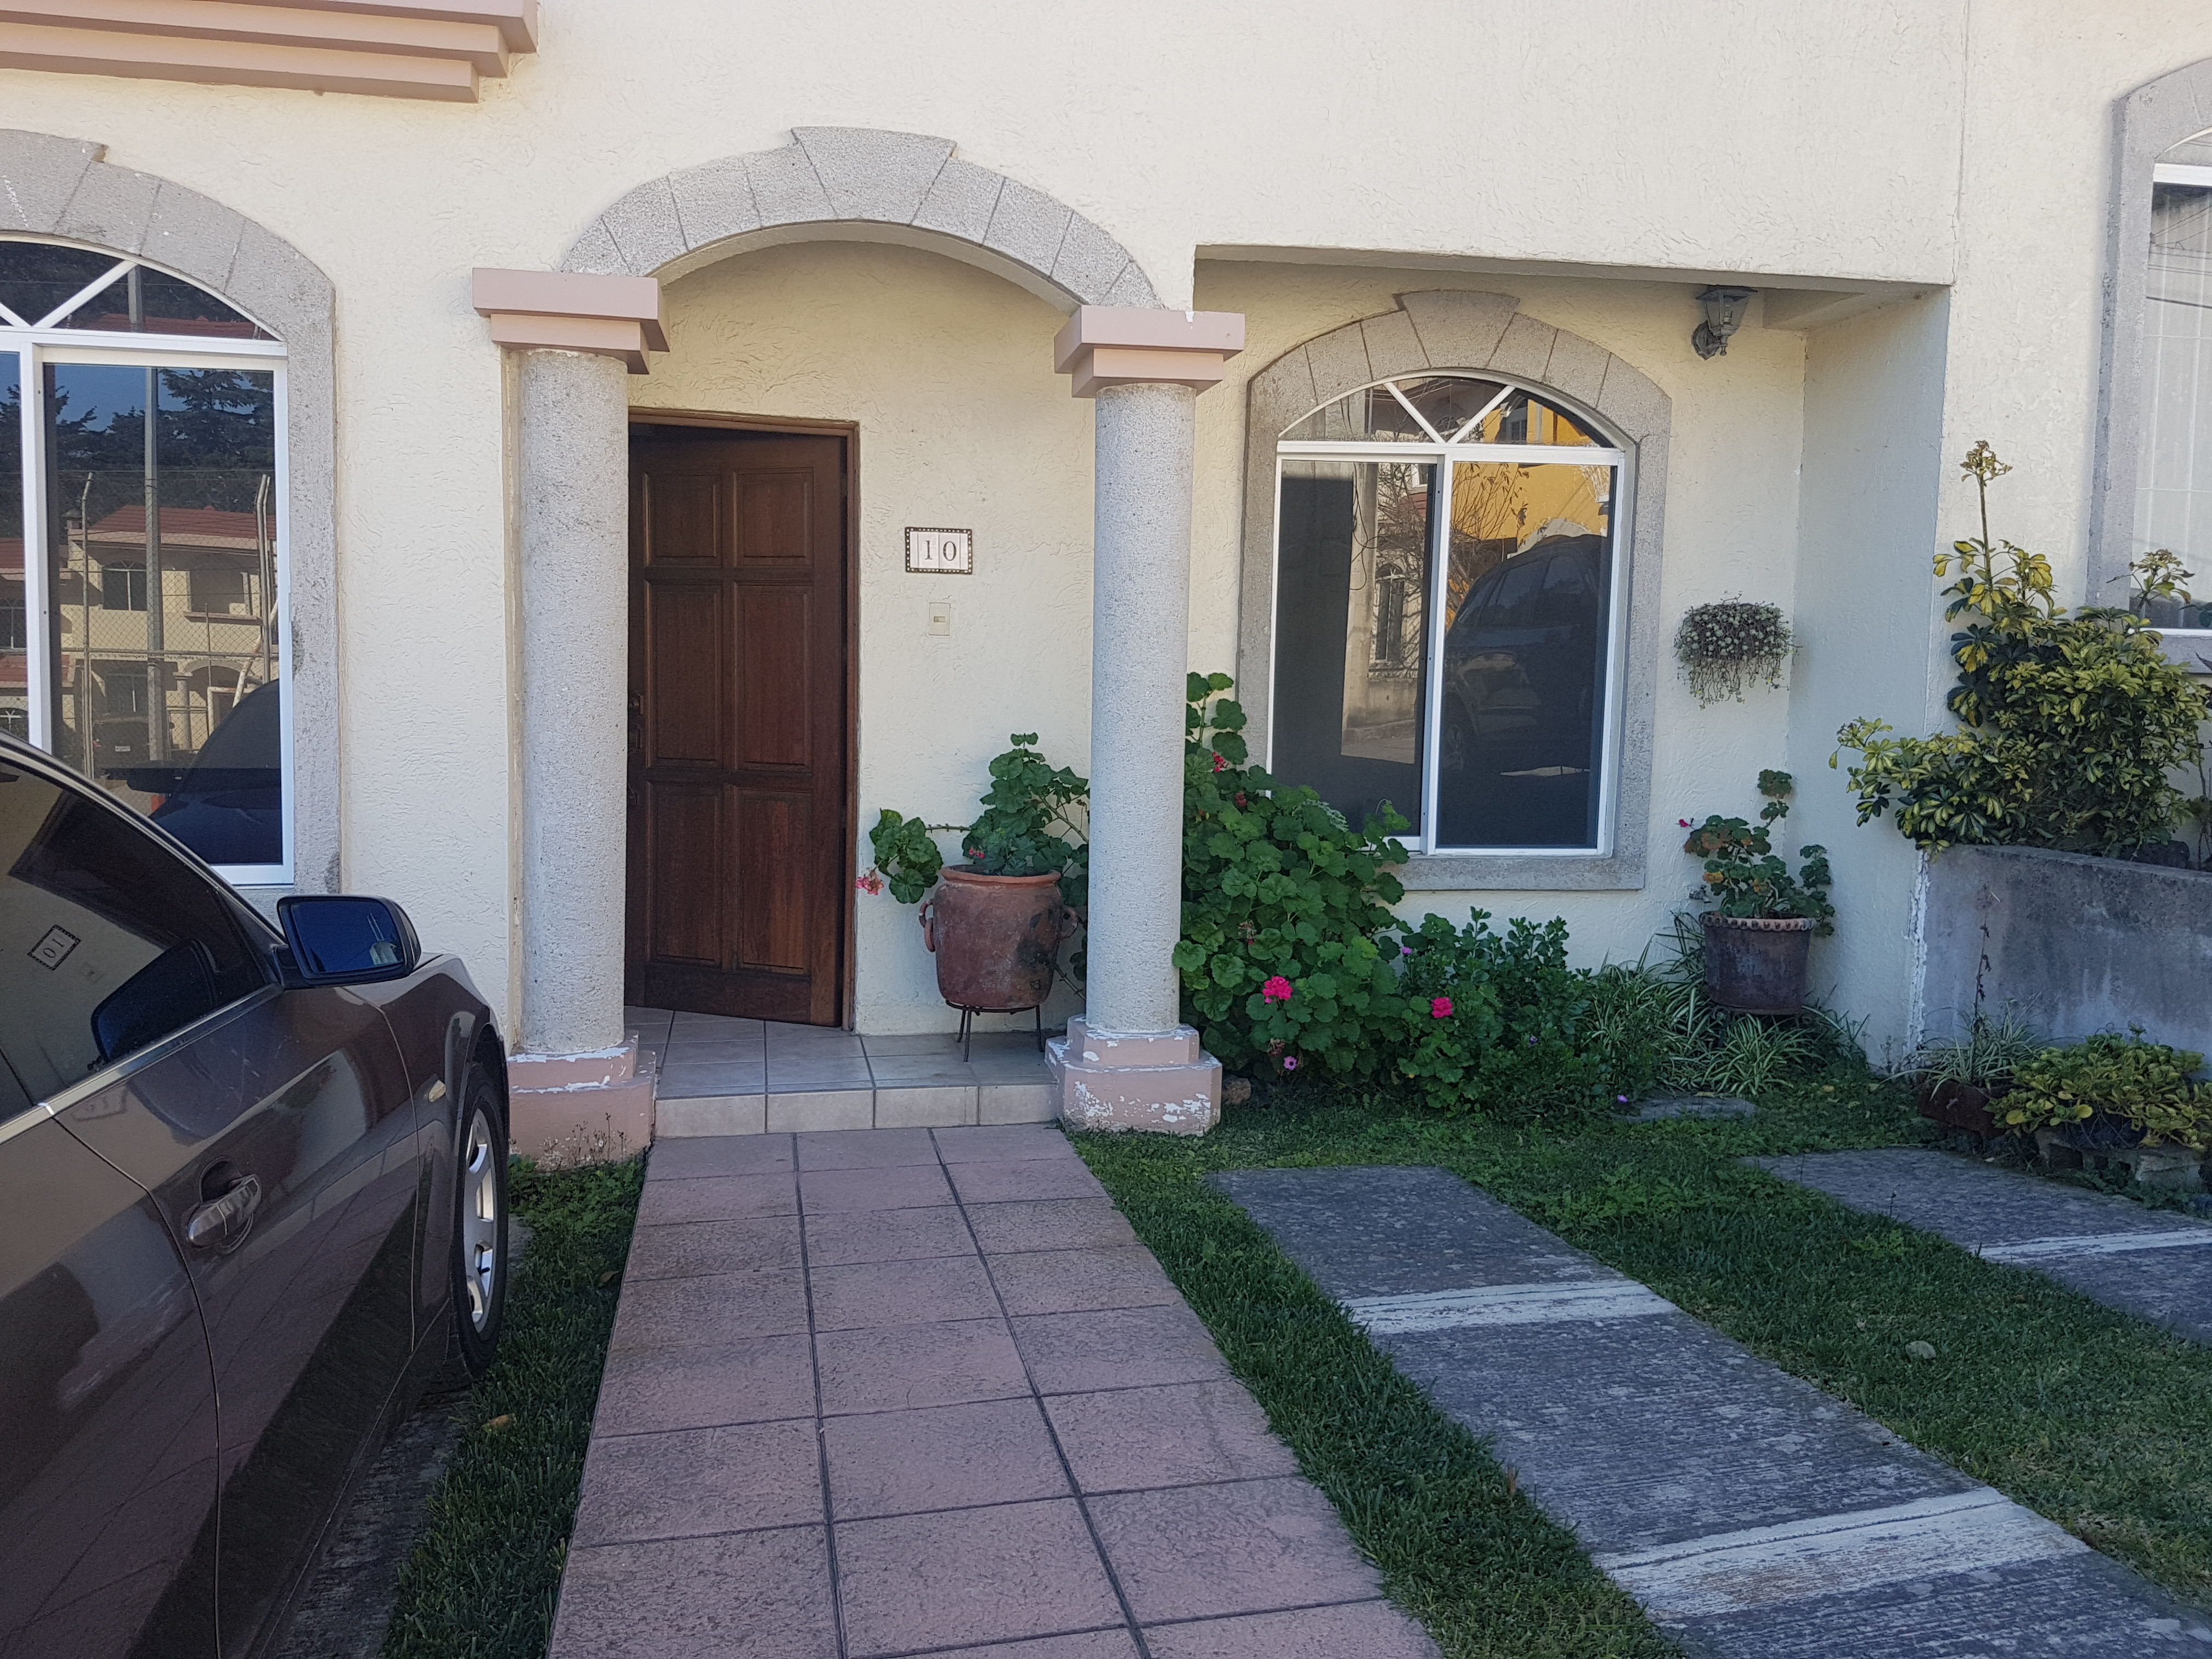 4592 NICE HOUSE FOR RENT IN SAN LUCAS